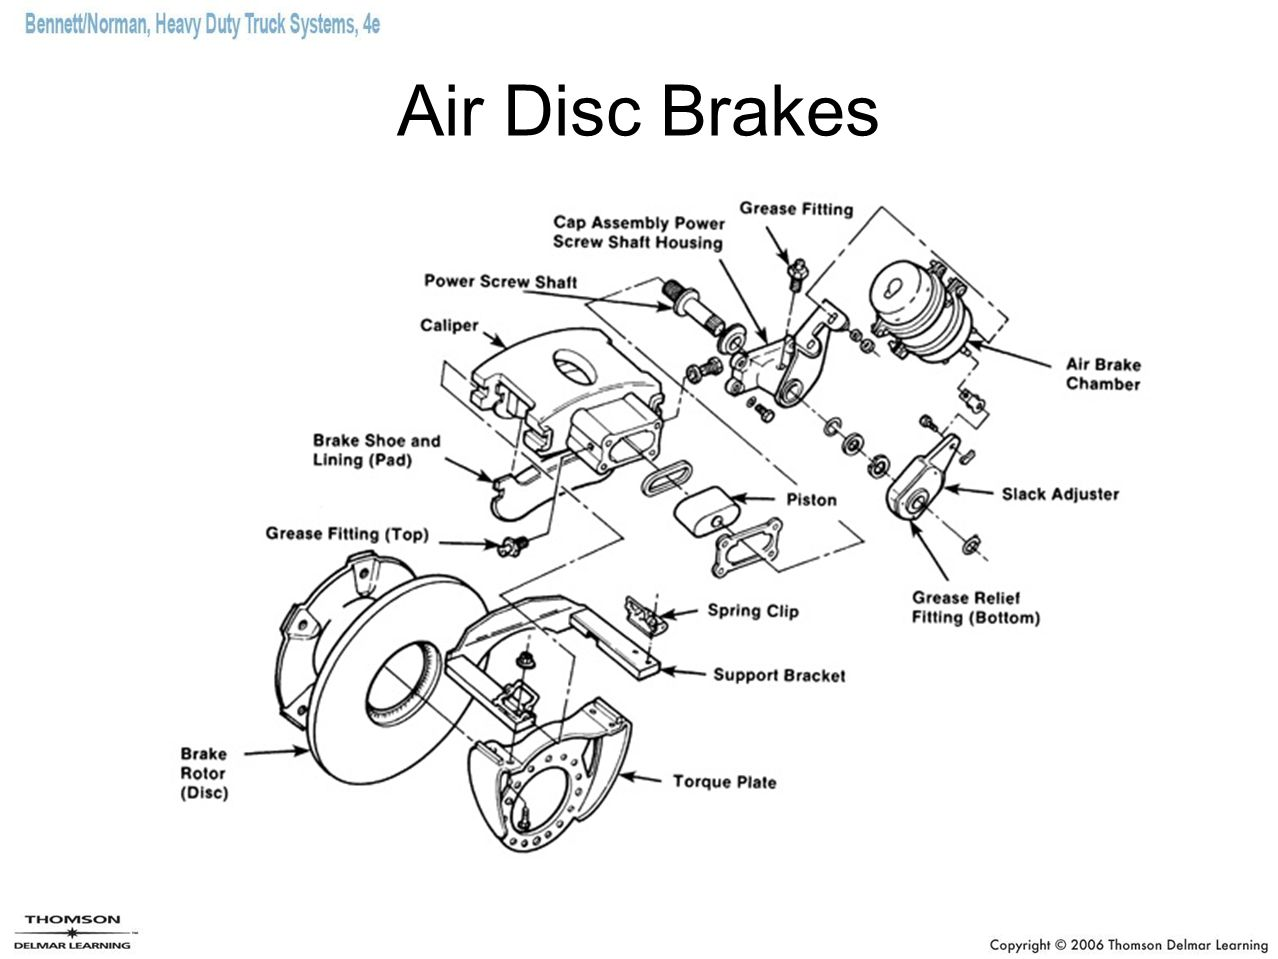 Chapter 31 Air Brake Servicing